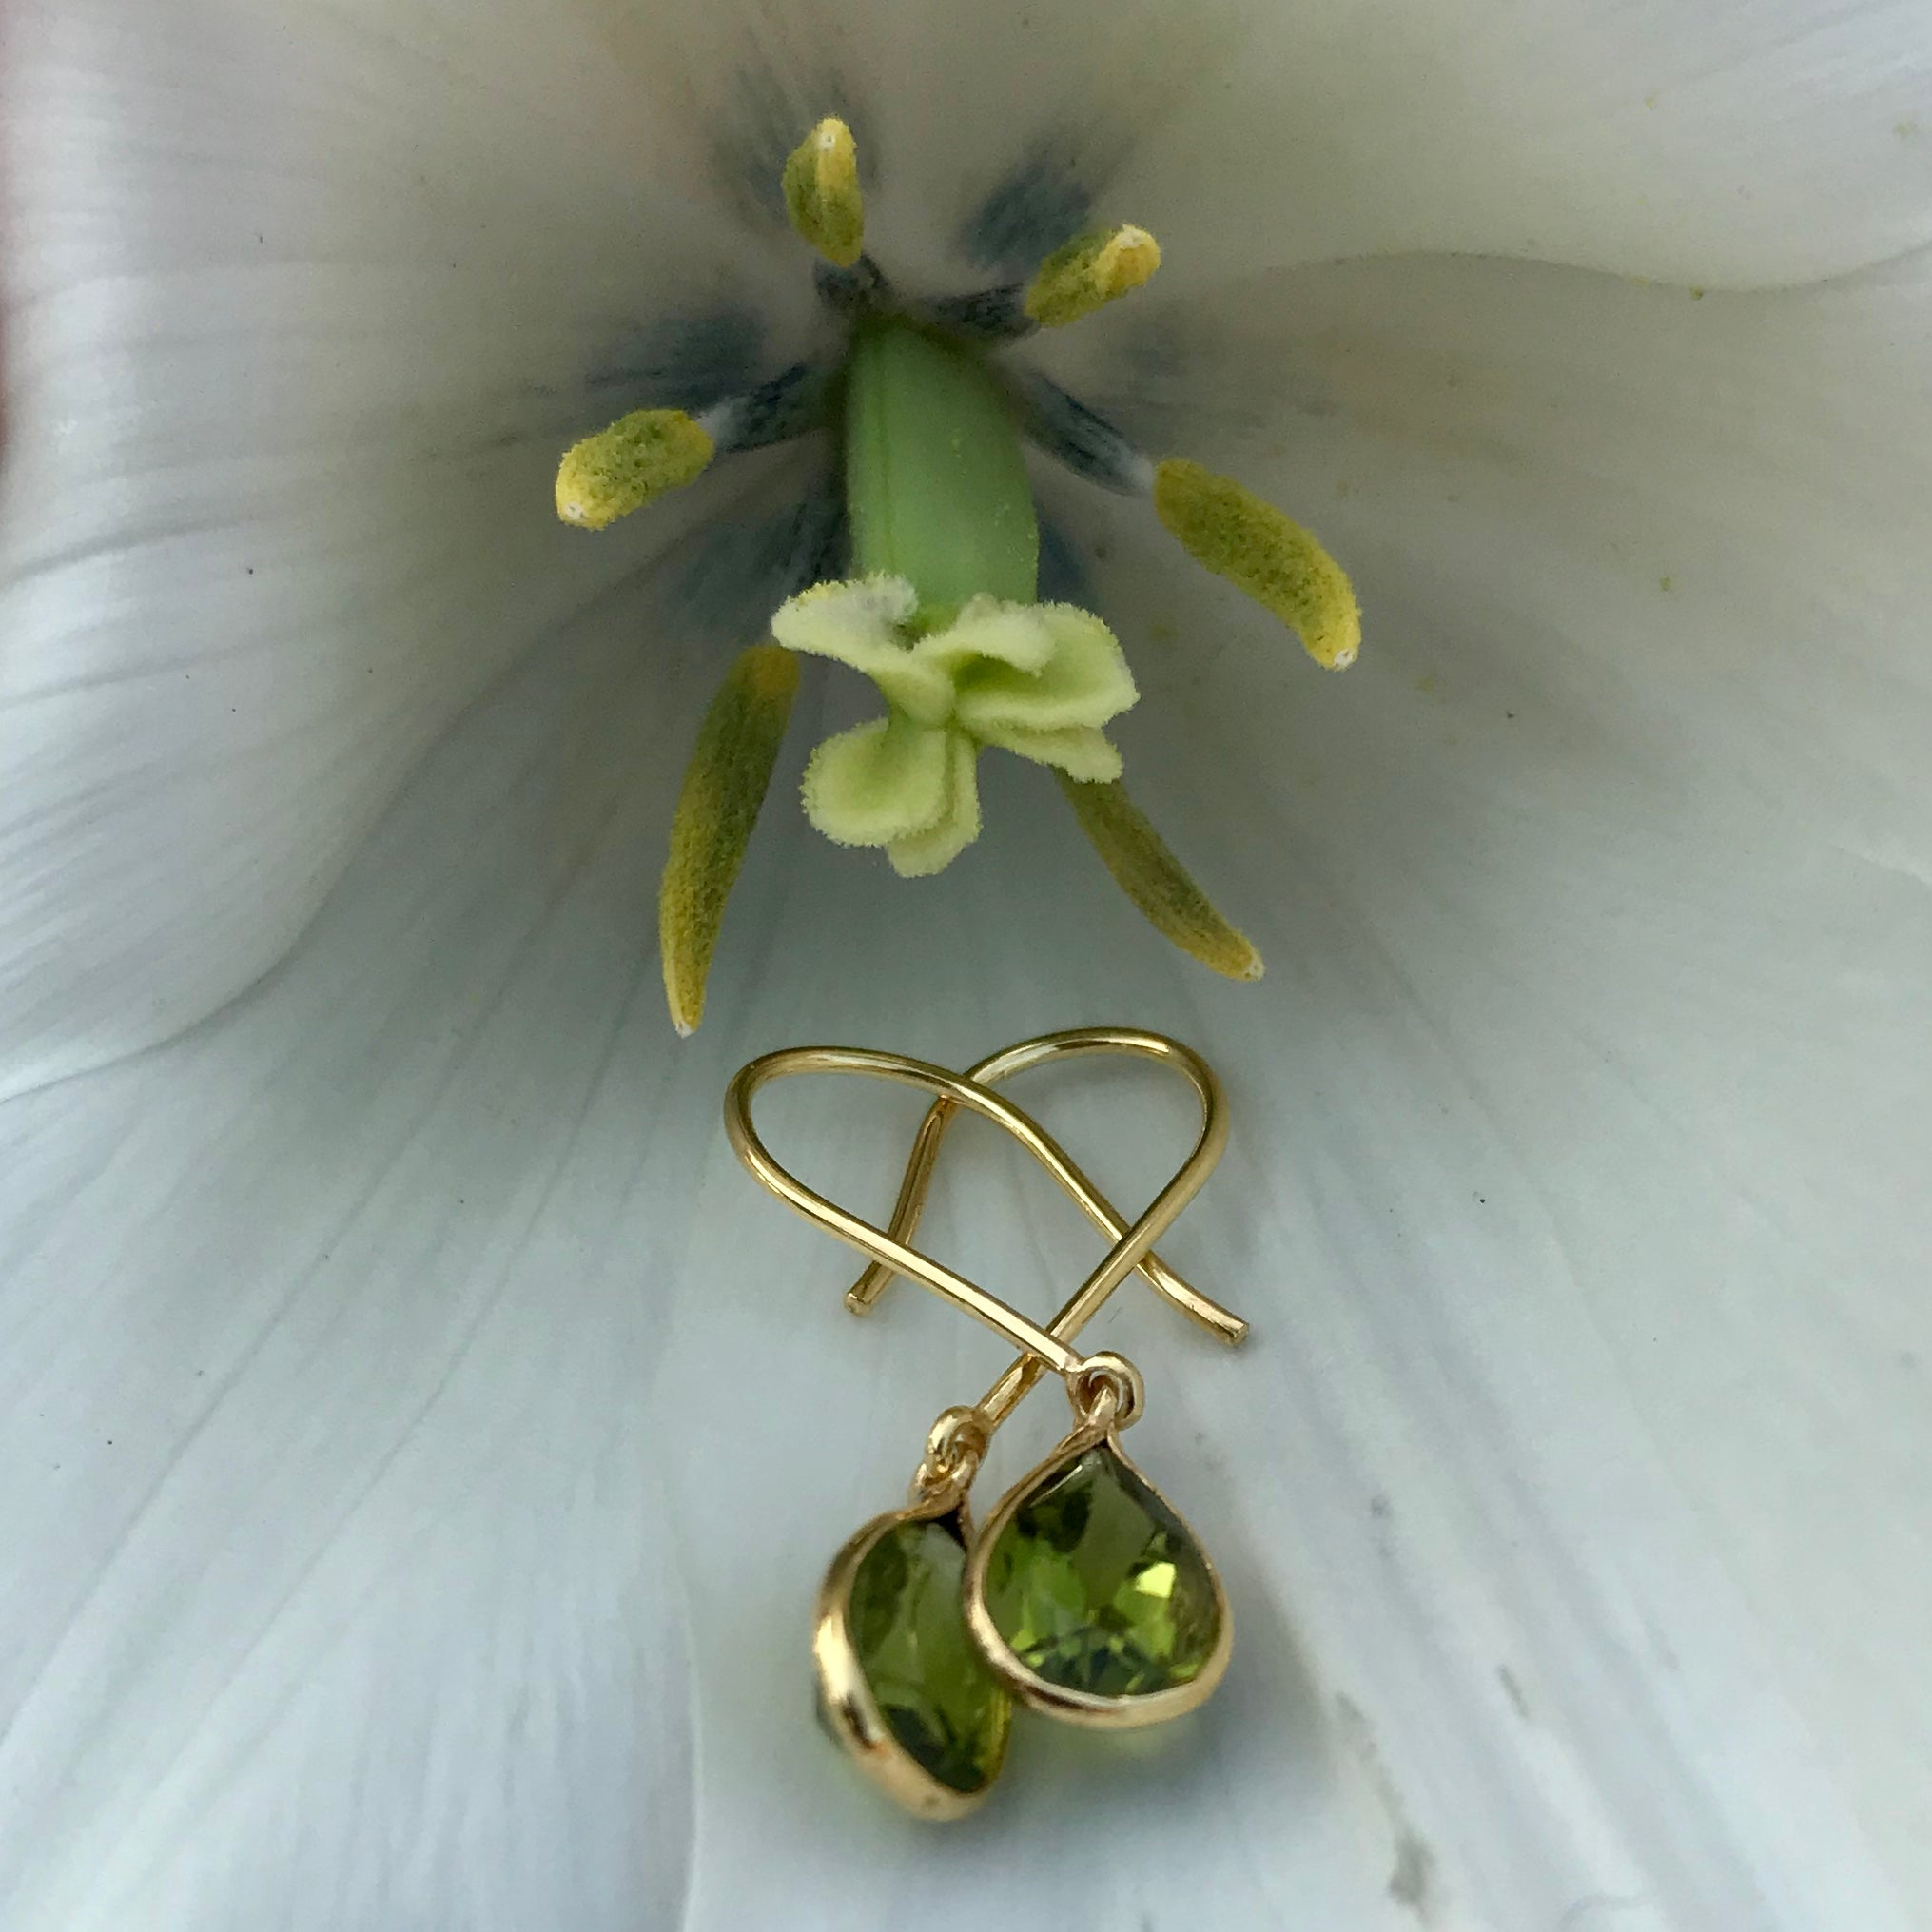 Tear Drop Earring in Gold with Peridot